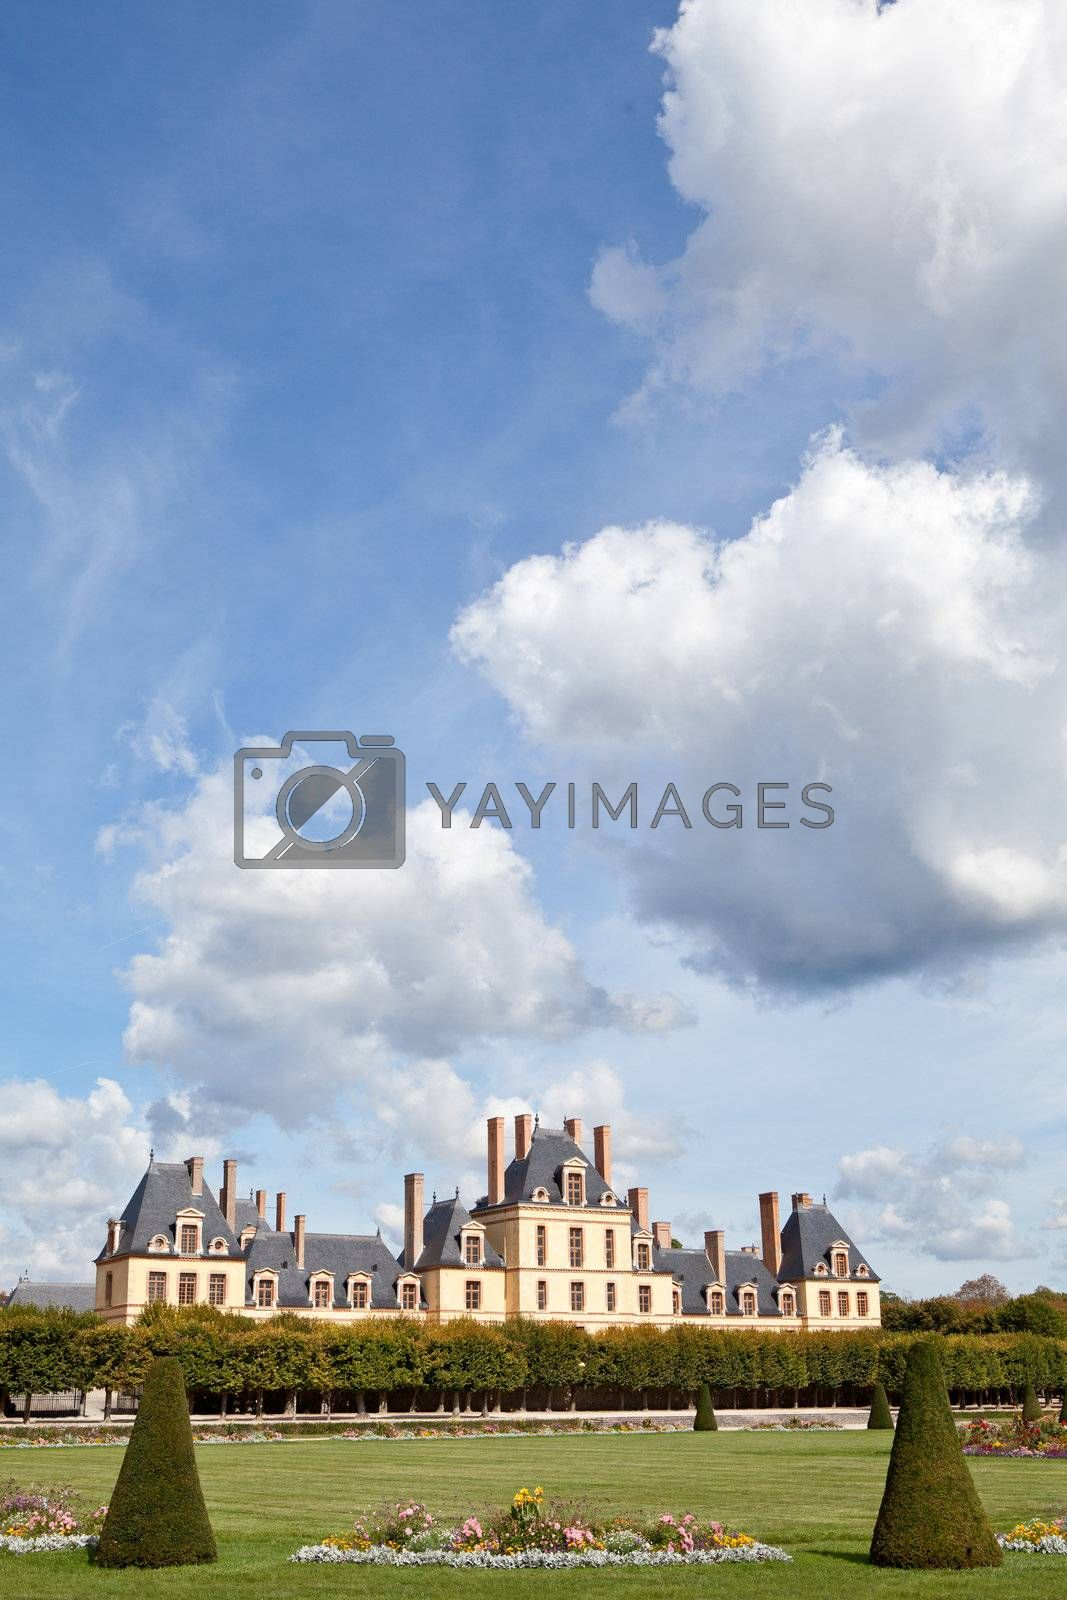 Medieval landmark royal hunting castle Fontainbleau near Paris in France and garden with flowers on the cloudy blue sky background